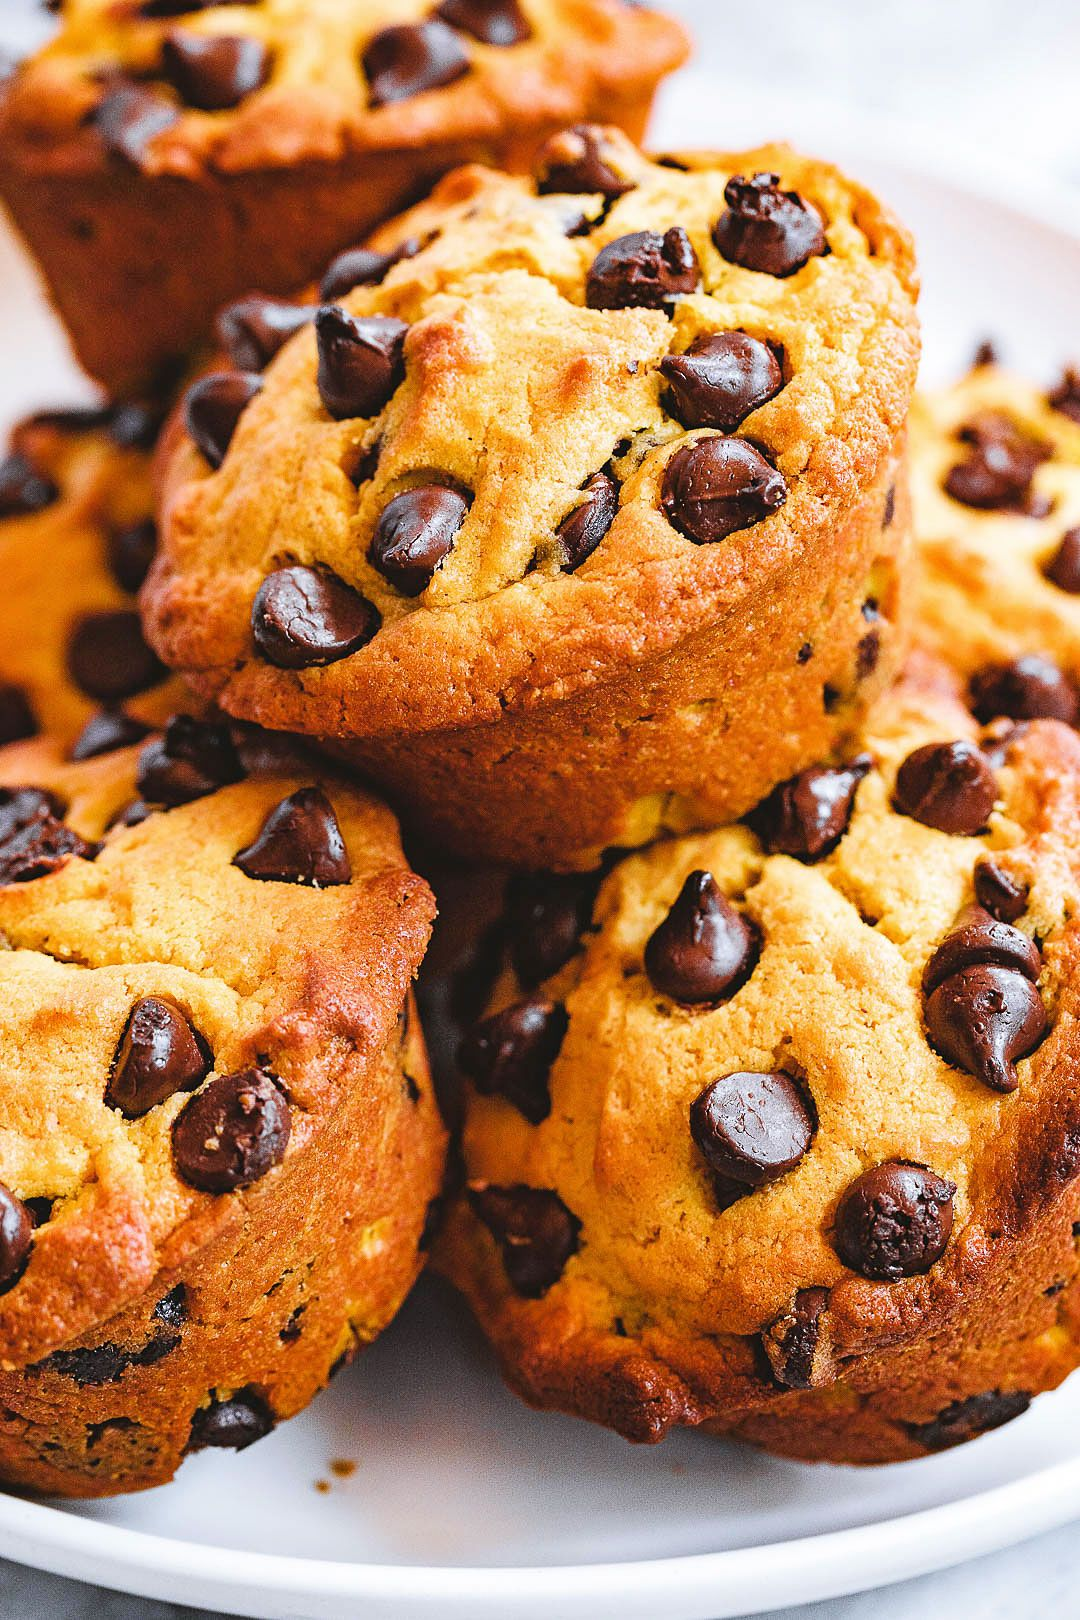 Pumpkin Chocolate Chip Muffins Pumpkin chocolate chip muffins - - These pumpkin chocolate chip muffins make for easy meal prep, perfect for cozy fall breakfasts or post-workout fuel! - by